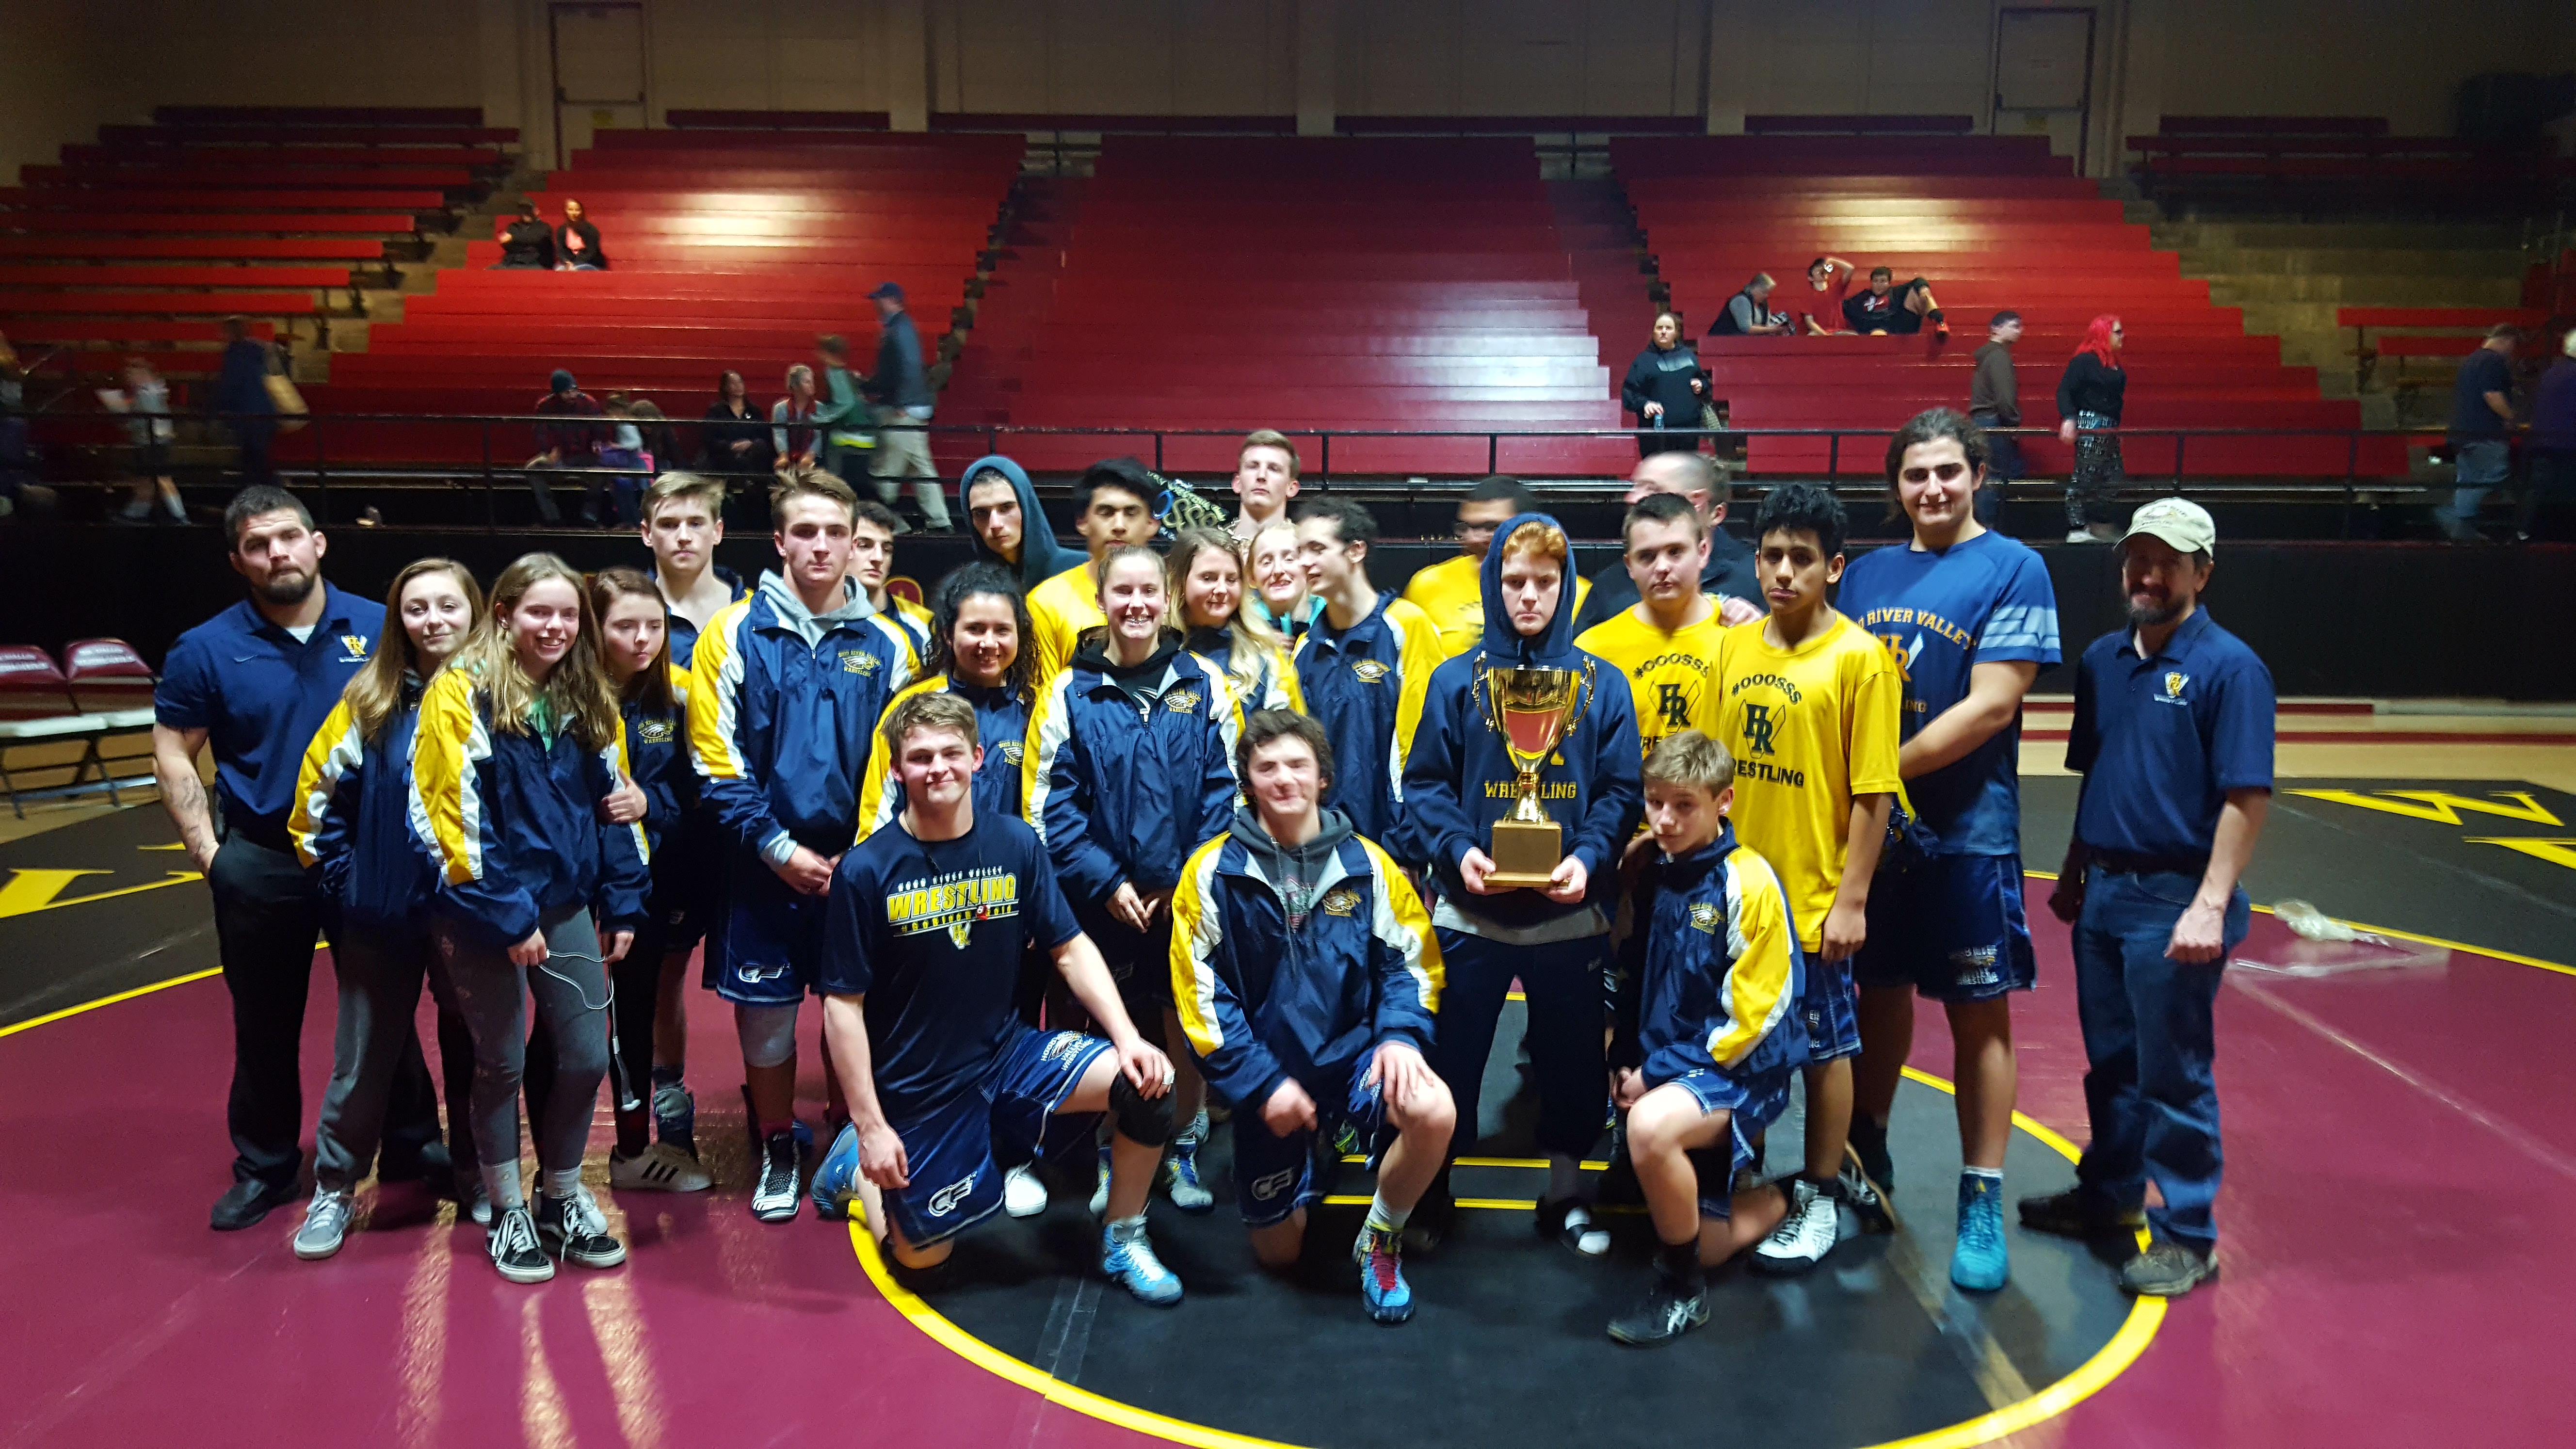 Wreagles earn River Clash Cup vs The Dalles 60-15